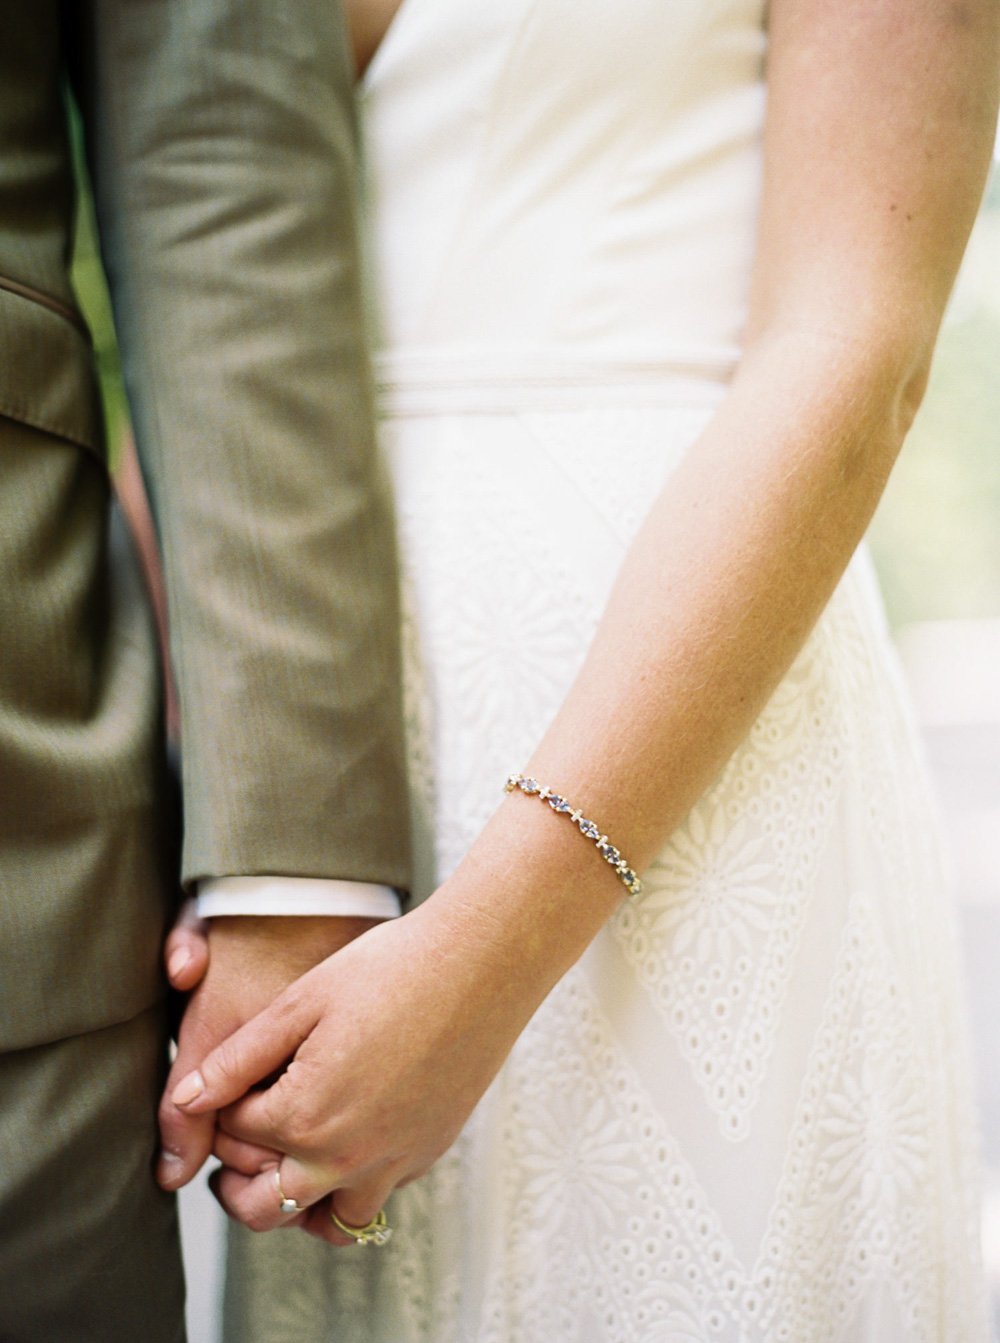 Bride and Groom hold hands at Wellspring Spa Wedding at Mt. Rainier